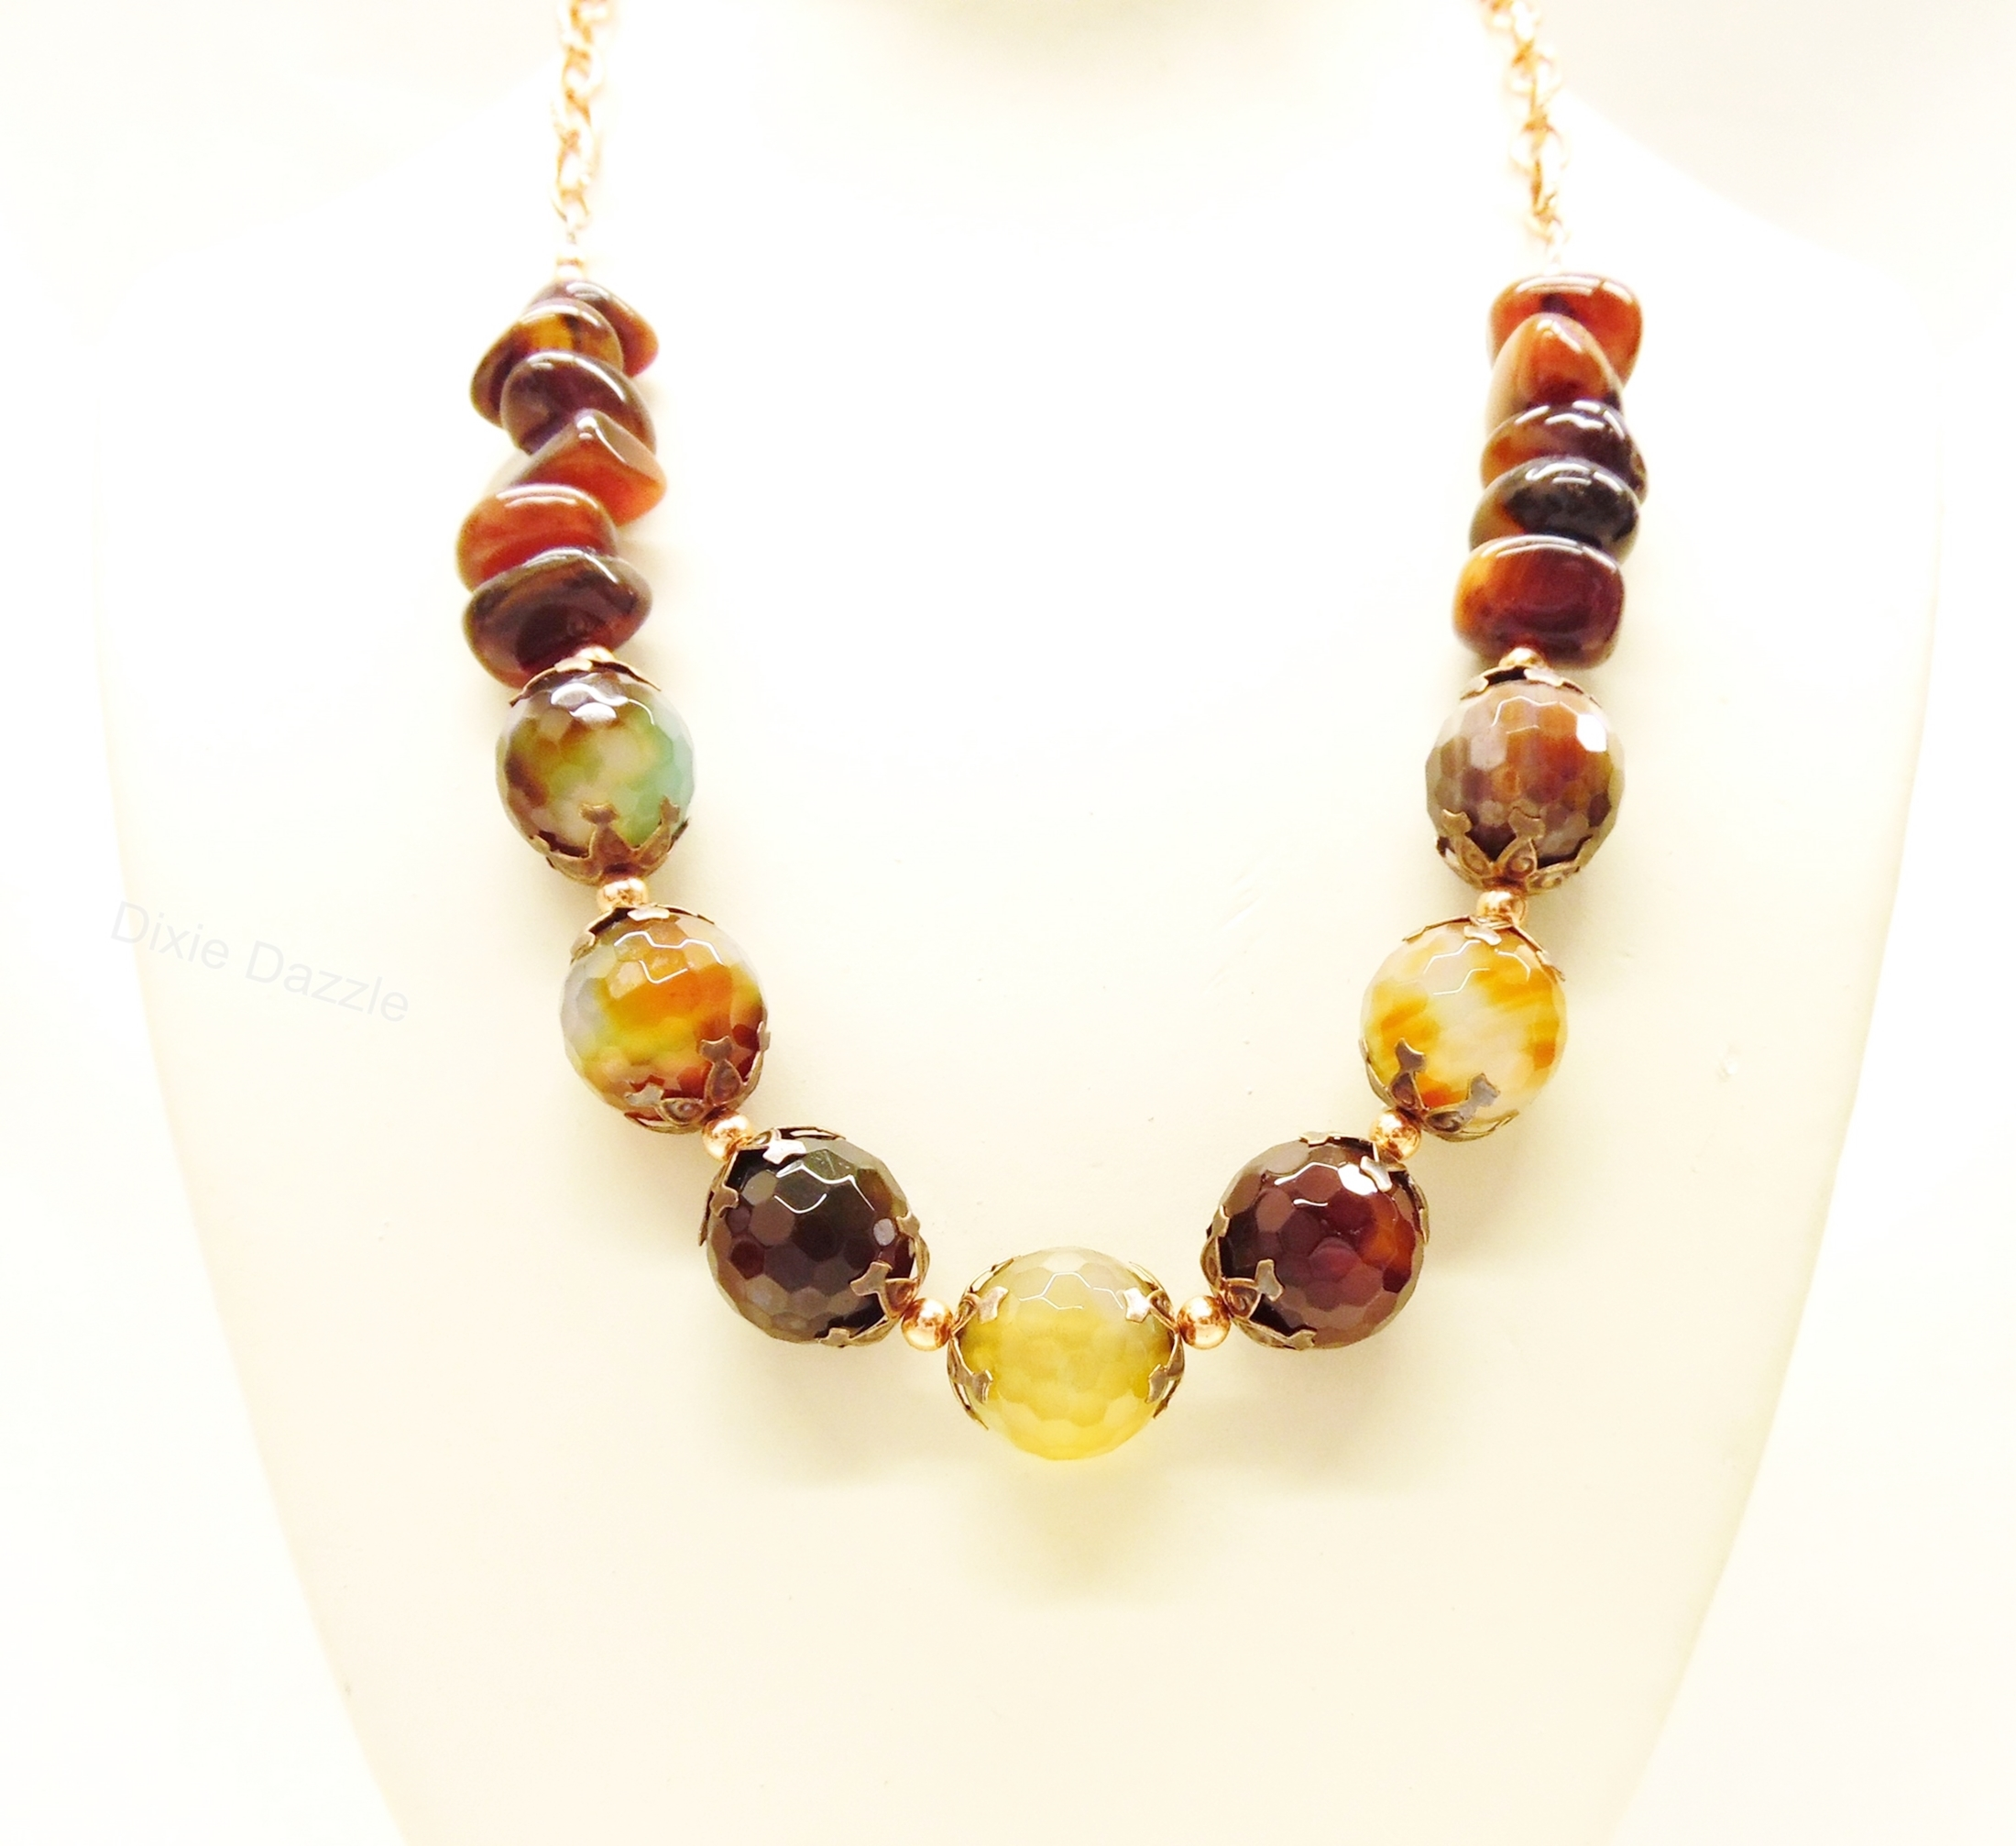 Chunky faceted agate natural stone necklace,gift under $50, autumn fashion, warm